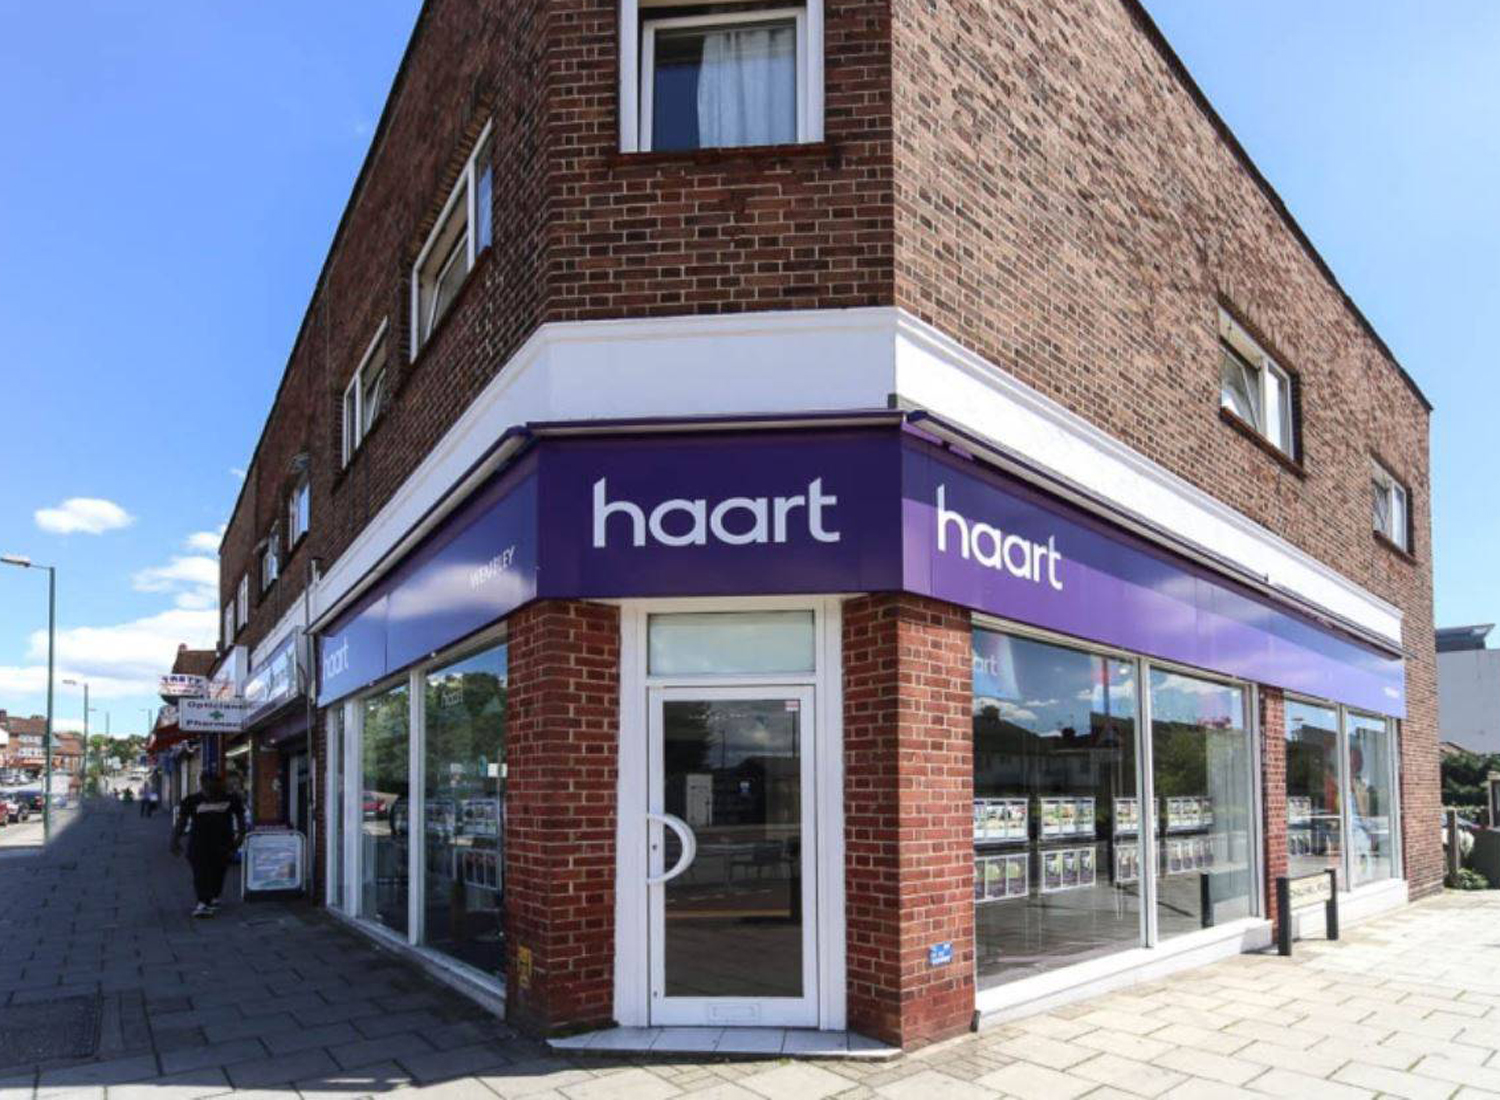 haart letting agents Wembley Park